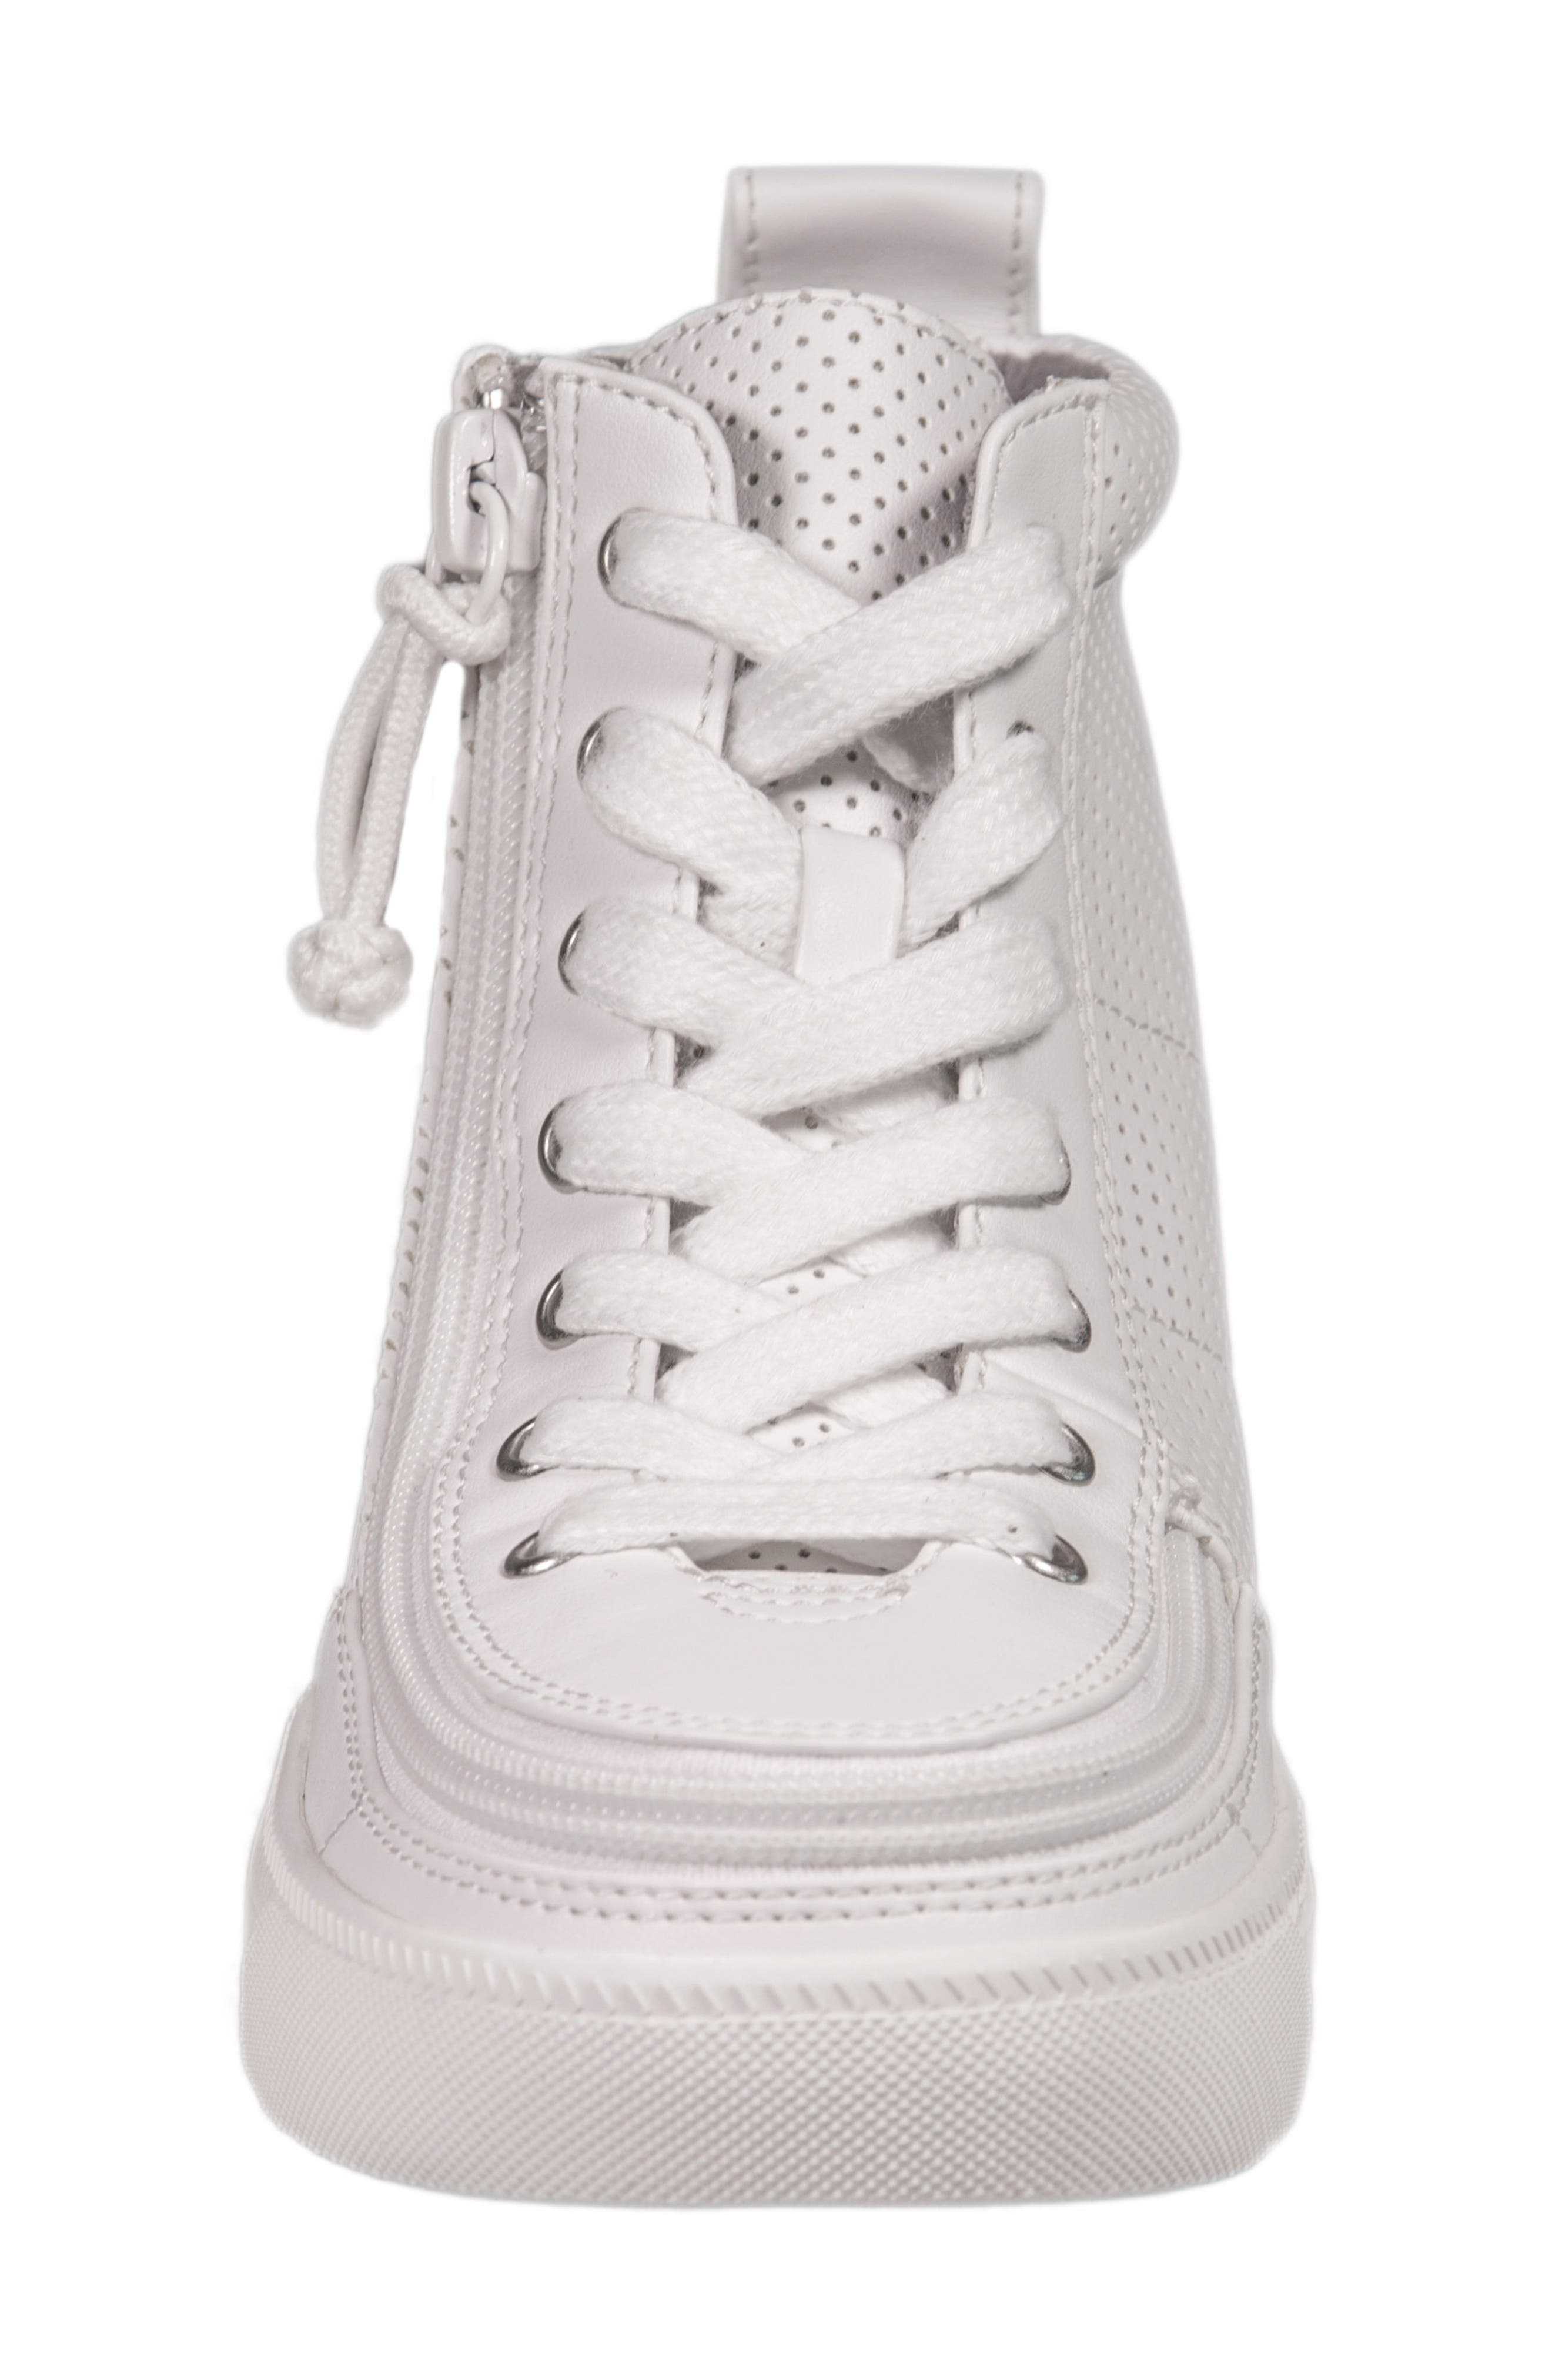 Zip Around Perforated High Top Sneaker,                             Alternate thumbnail 4, color,                             White Perforated